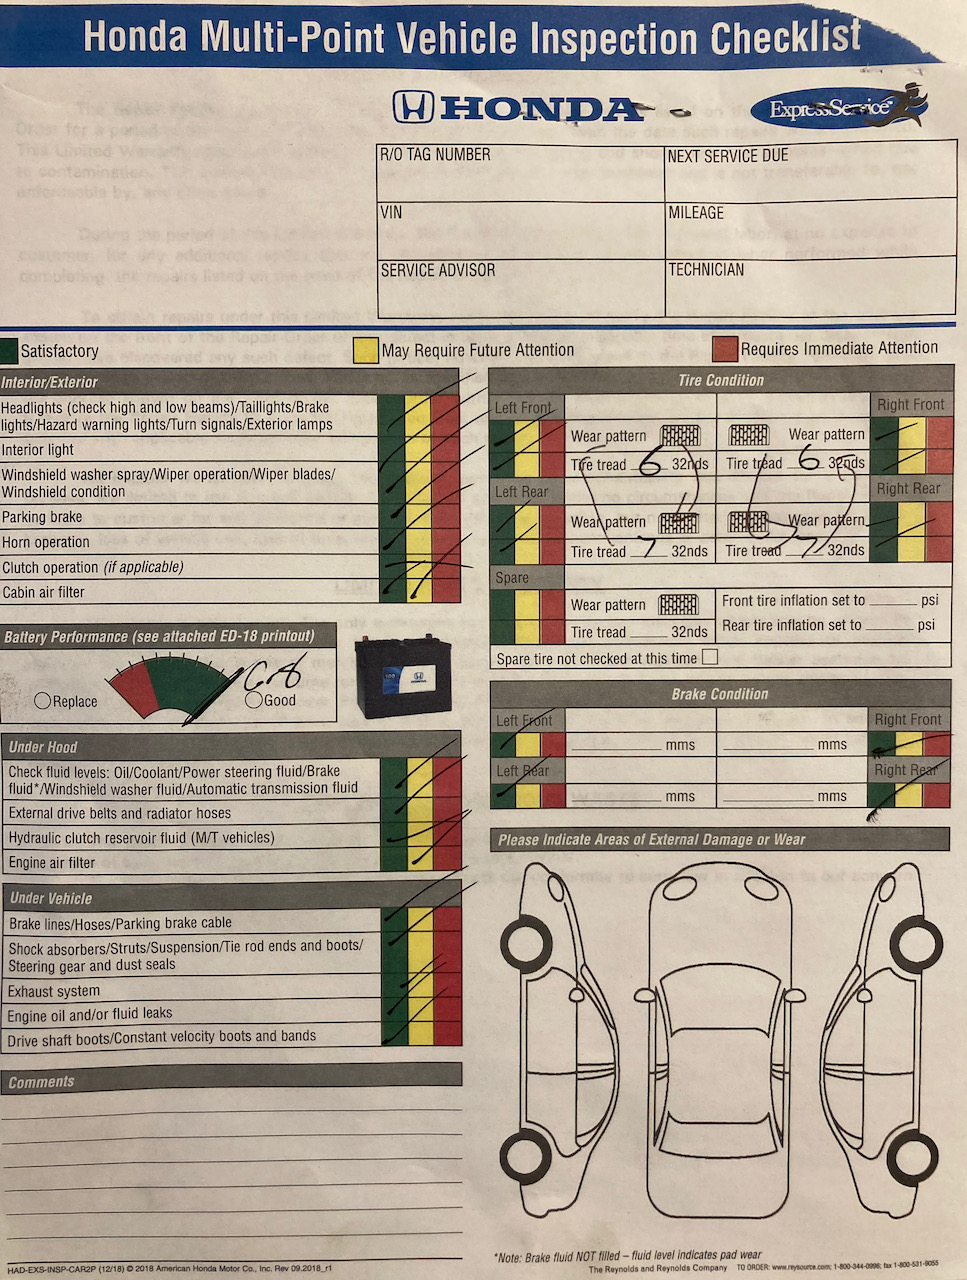 Vehicle inspection report with green marks on all fields.